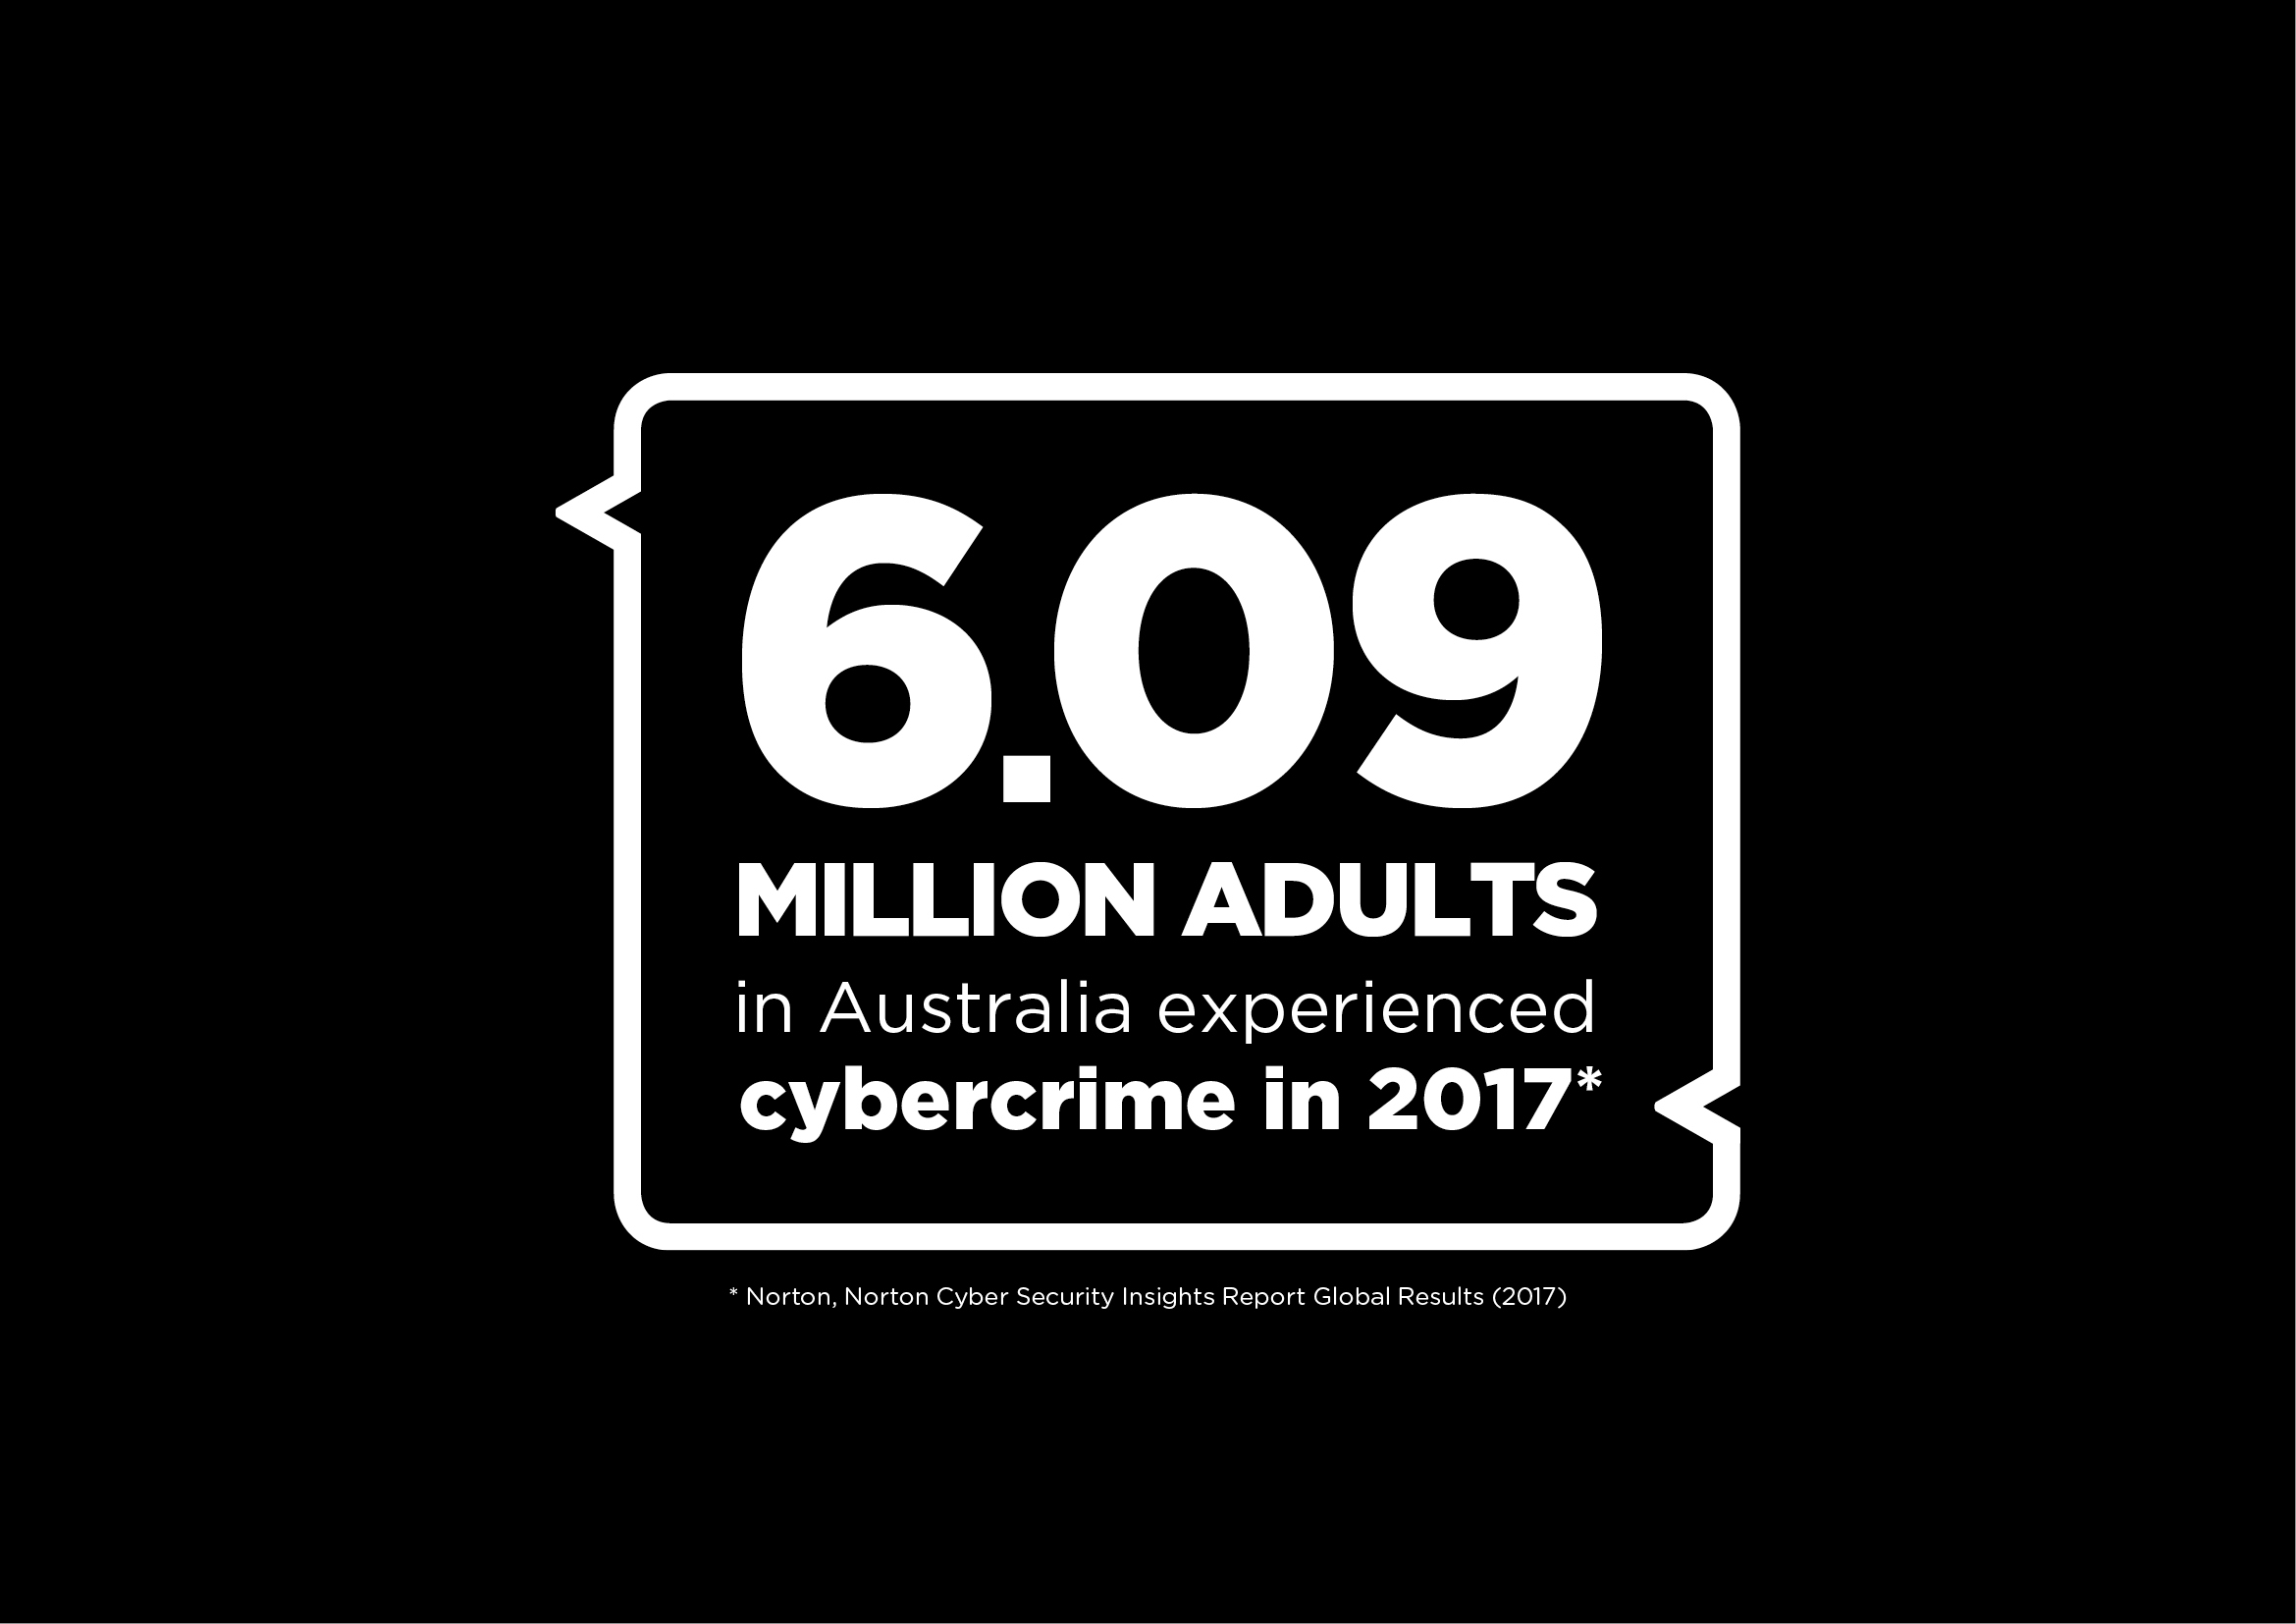 over 6 million adults experienced cybercrime in 2017